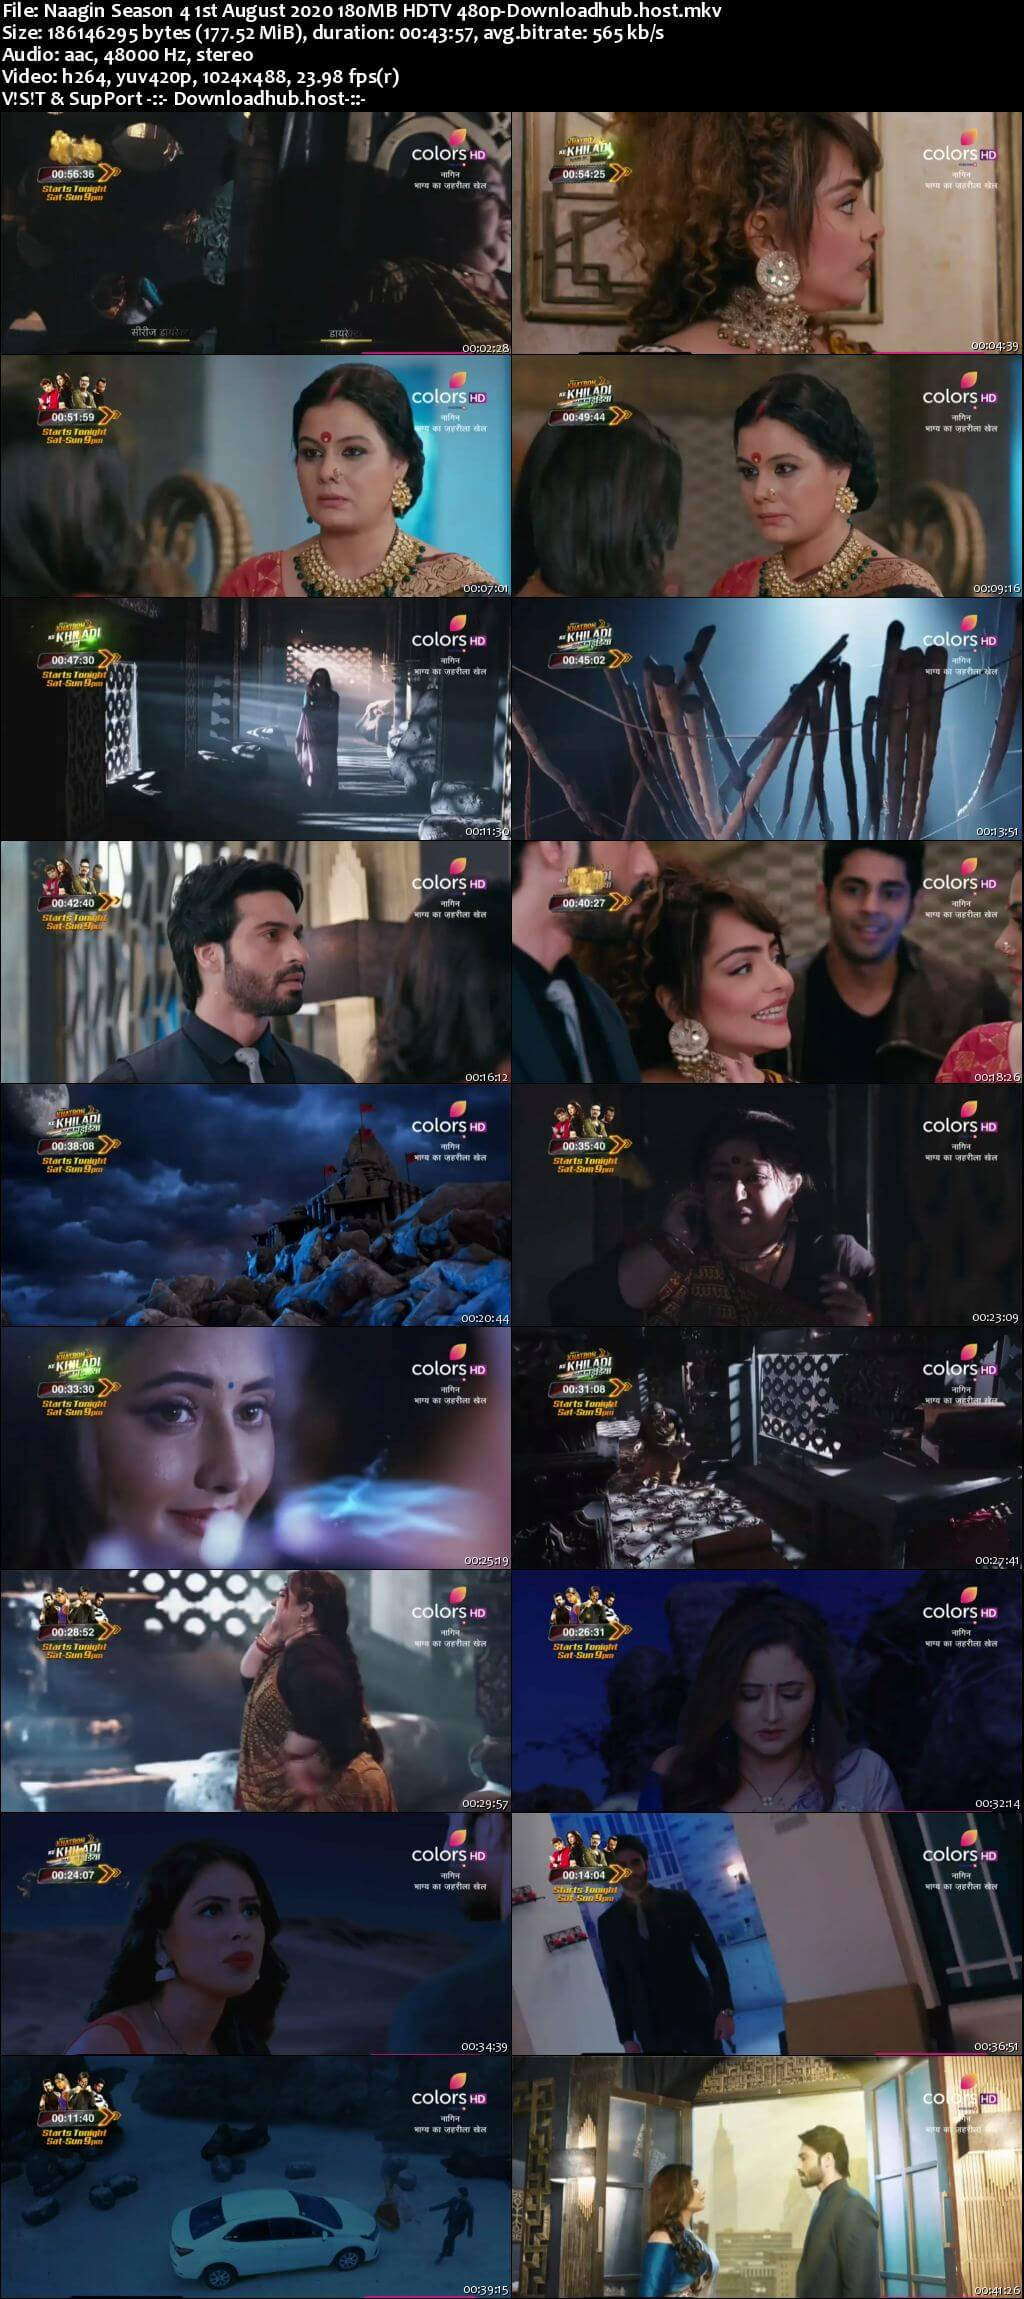 Naagin Season 4 1st August 2020 180MB HDTV 480p